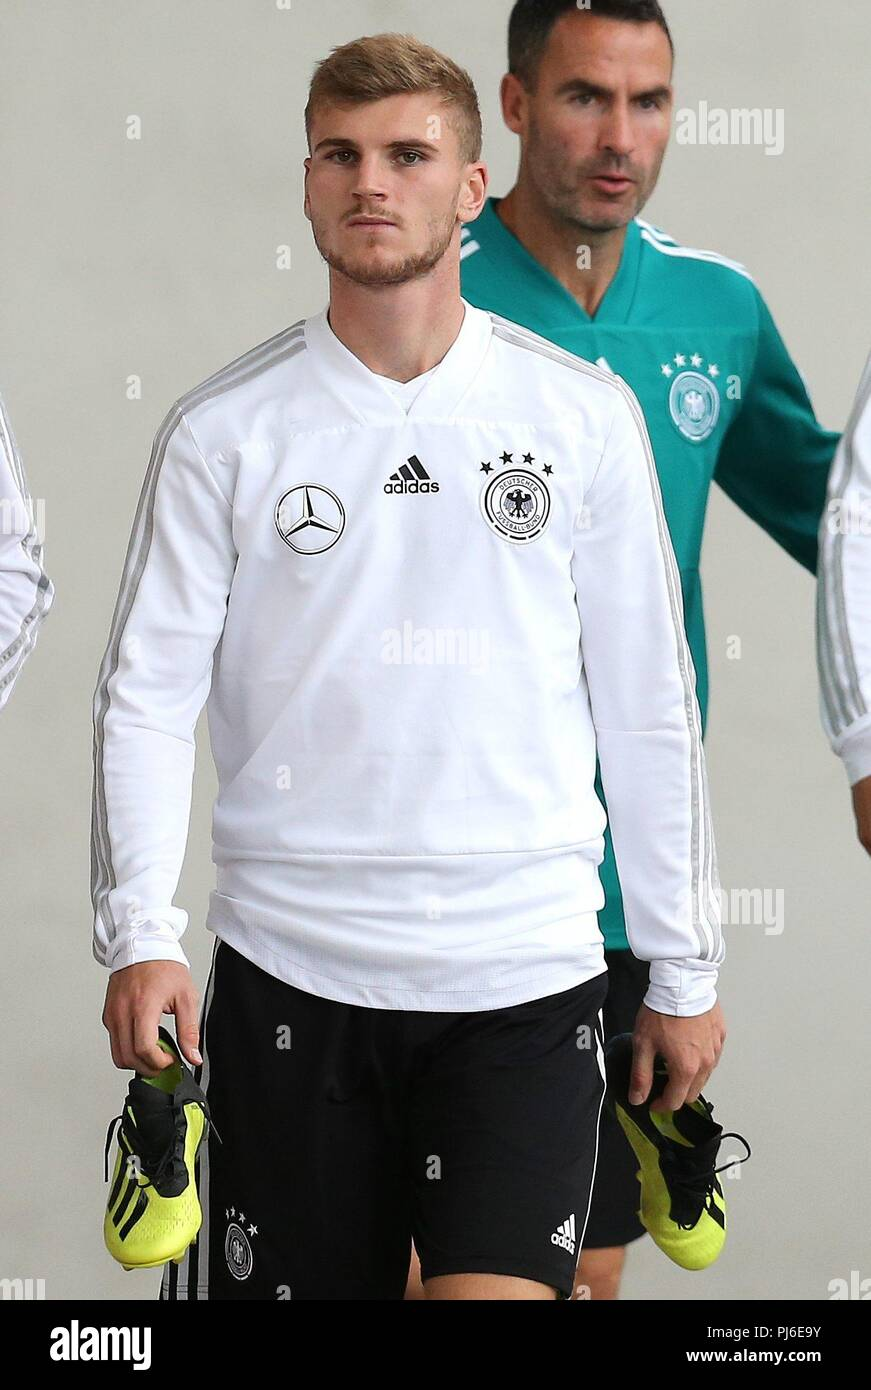 firo: 04.09.2018, Fuvuball, football, national team, training, Timo Werner, DFB, half figure, Germany | usage worldwide - Stock Image